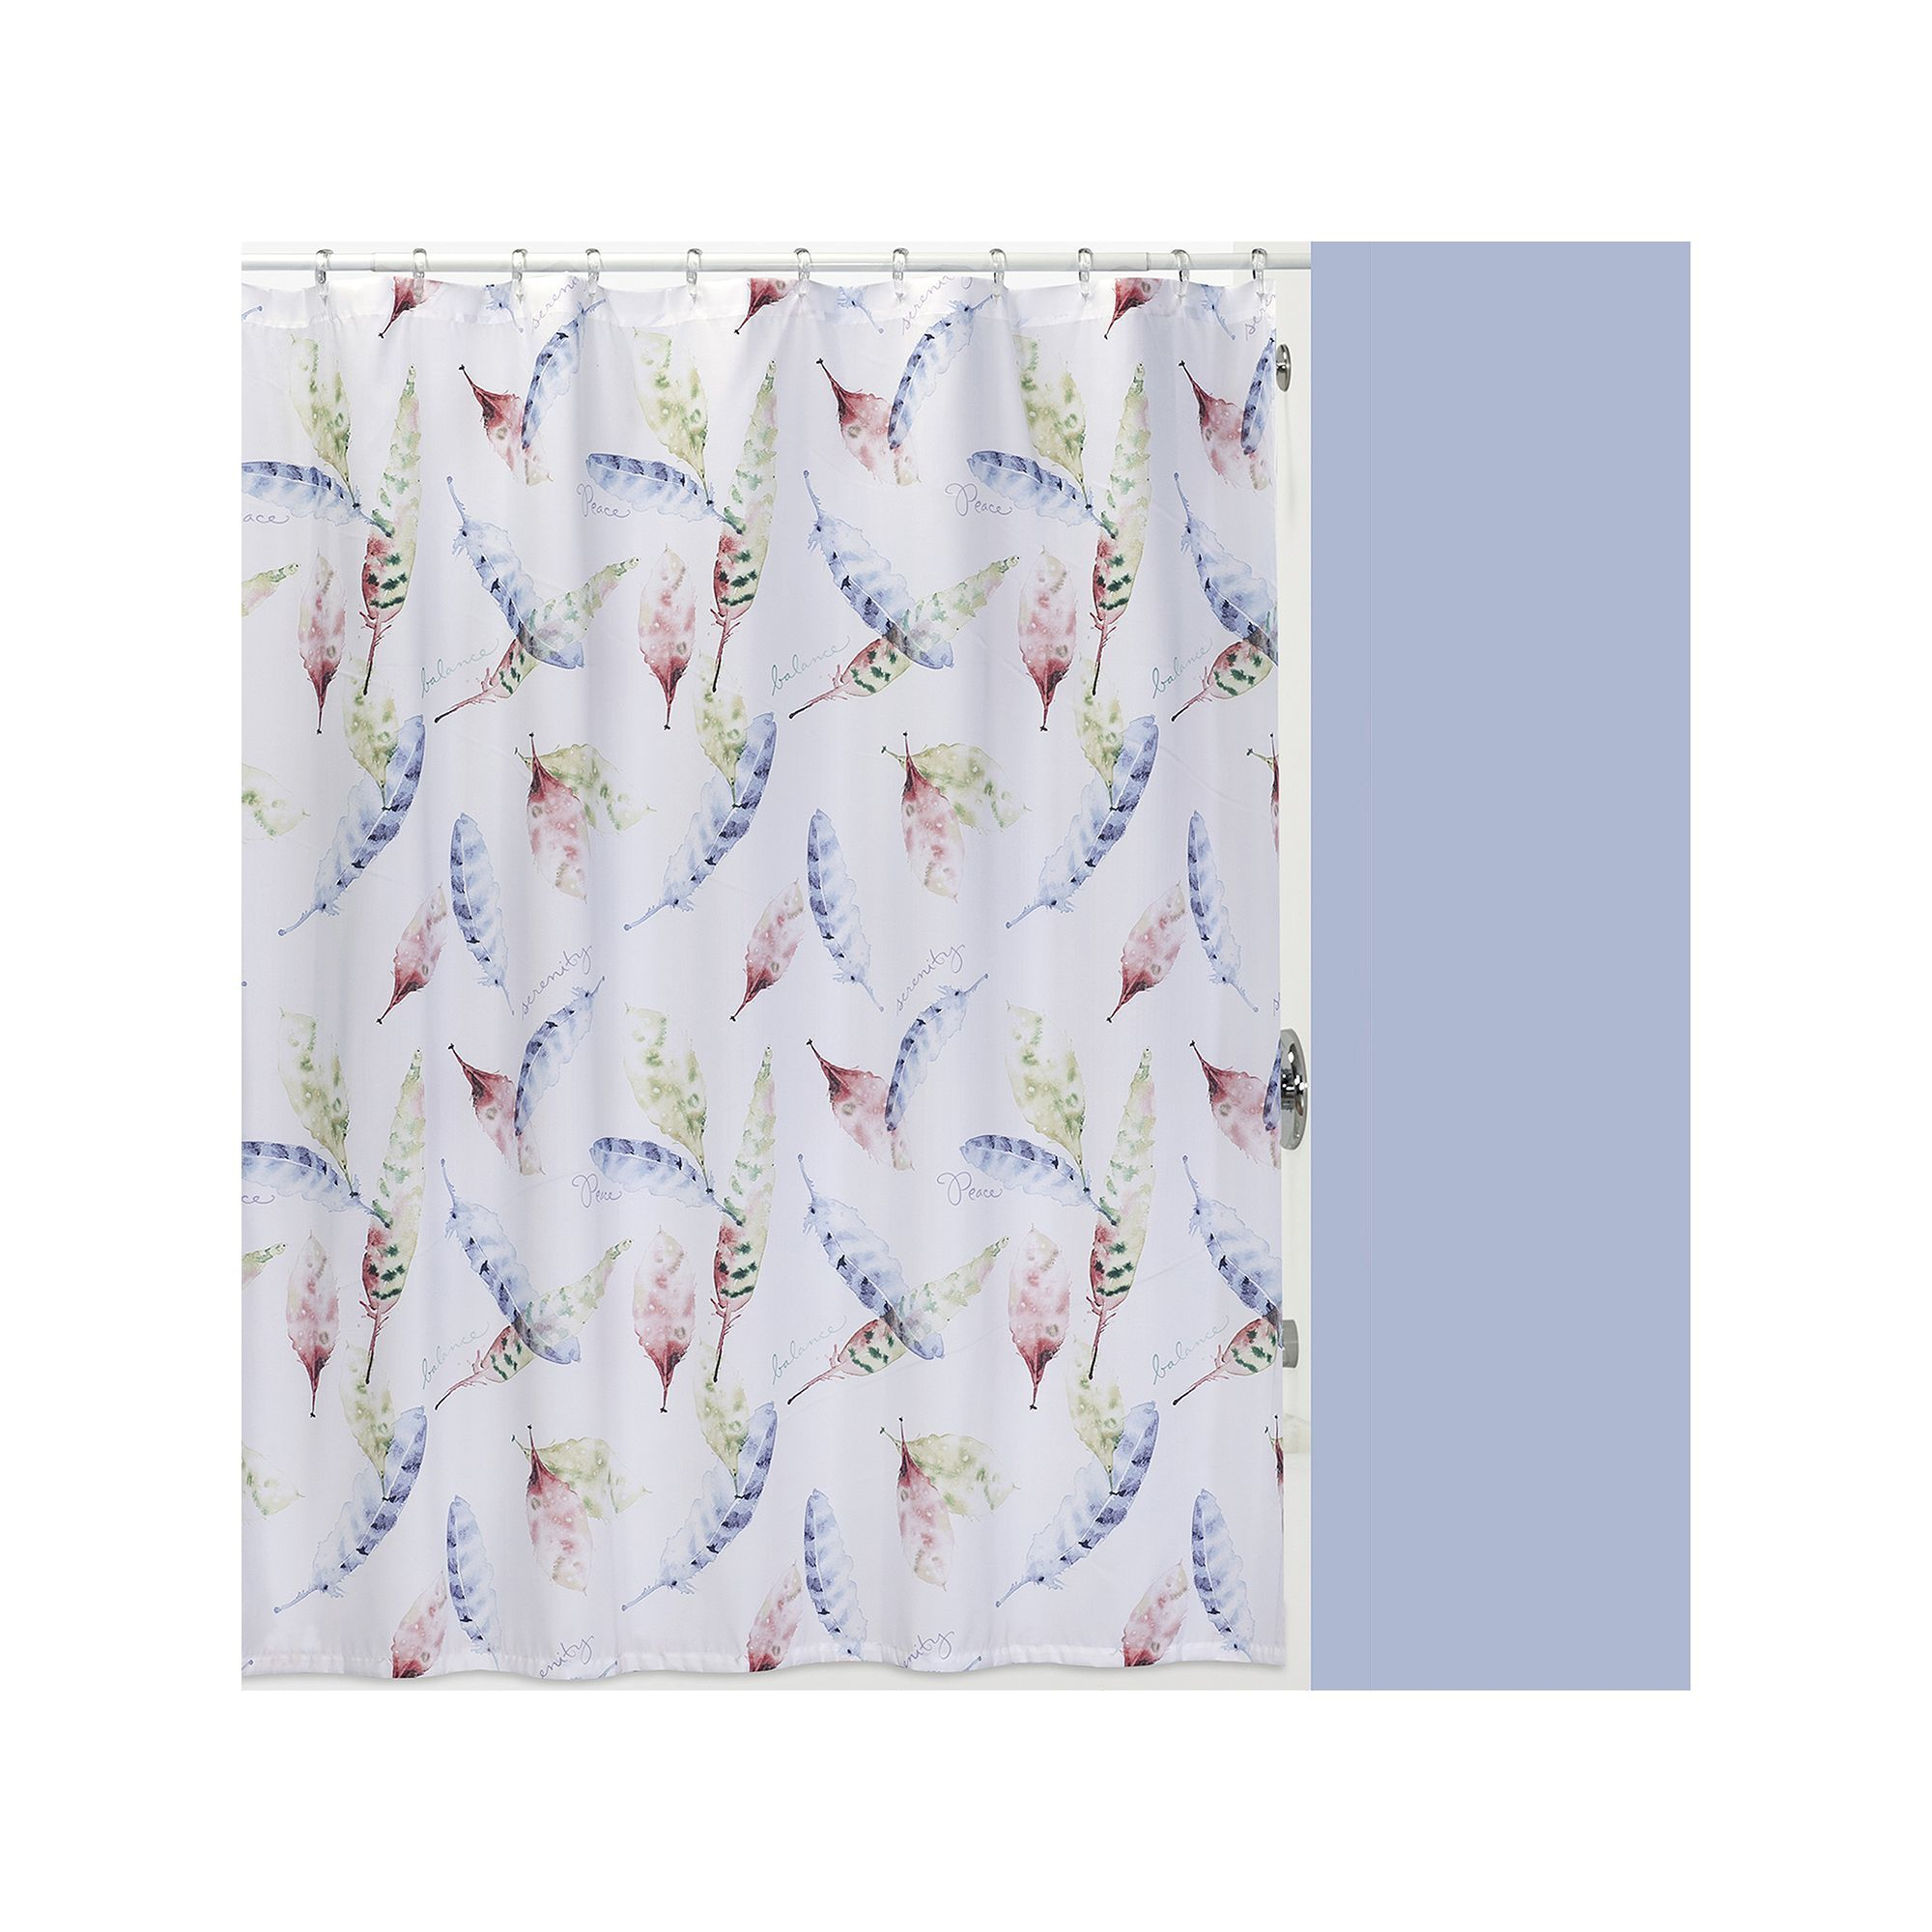 Kathy davis daydream shower curtain daydream and products